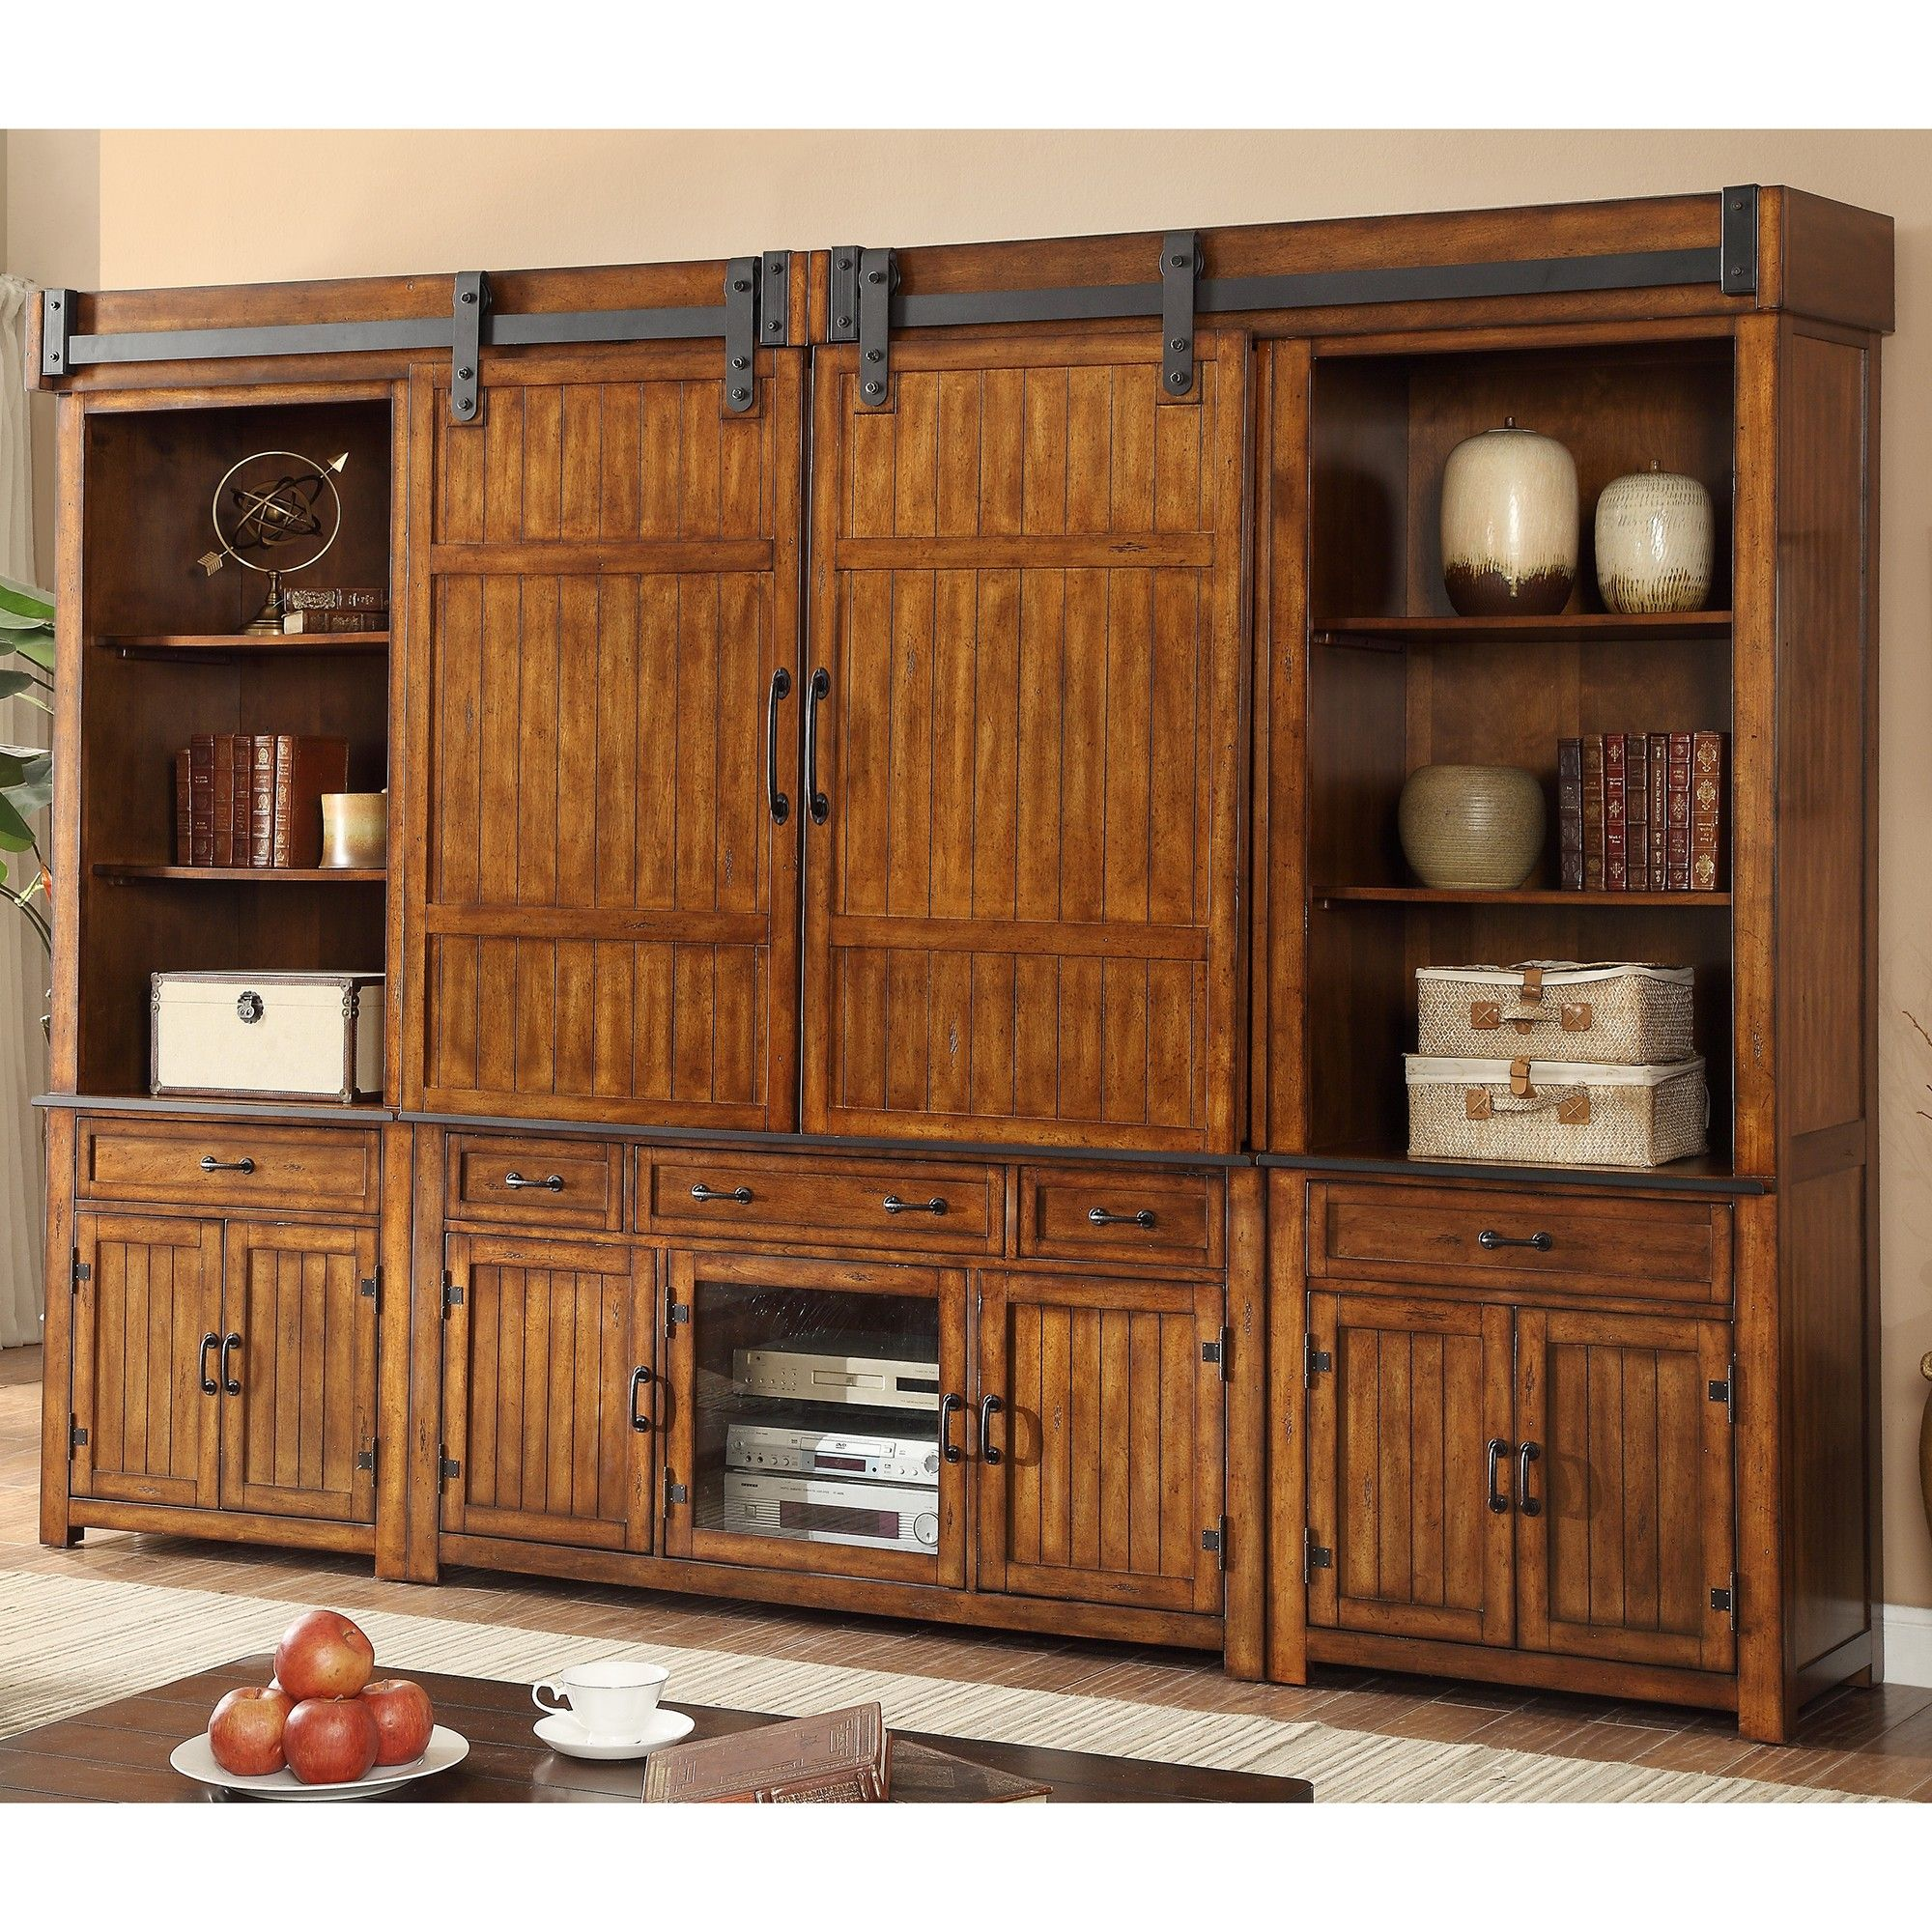 New industrial piece entertainment center wall unit in distressed